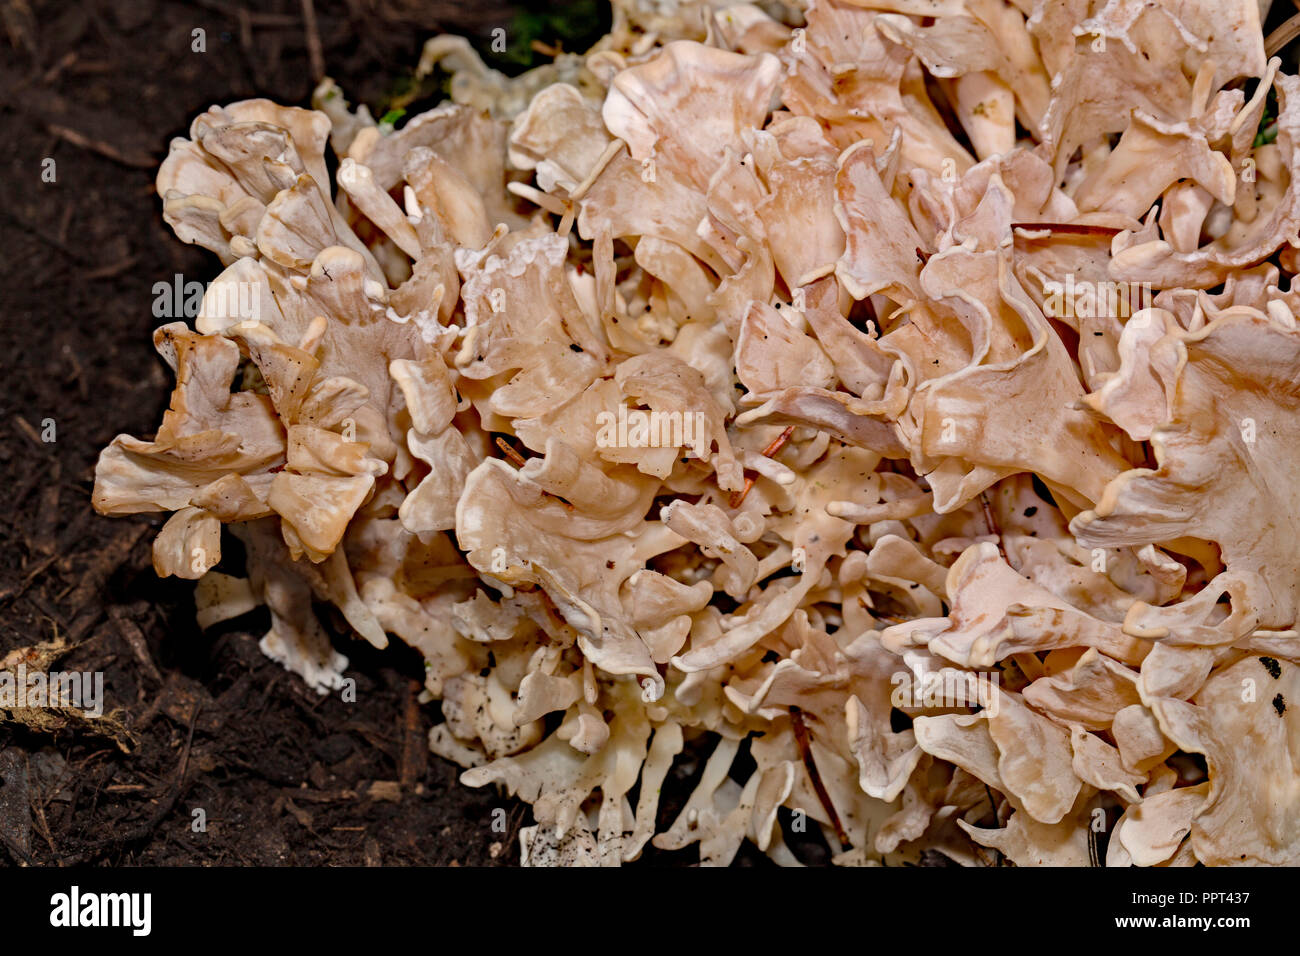 Cauliflower mushroom, (Sparassis brevipes) - Stock Image